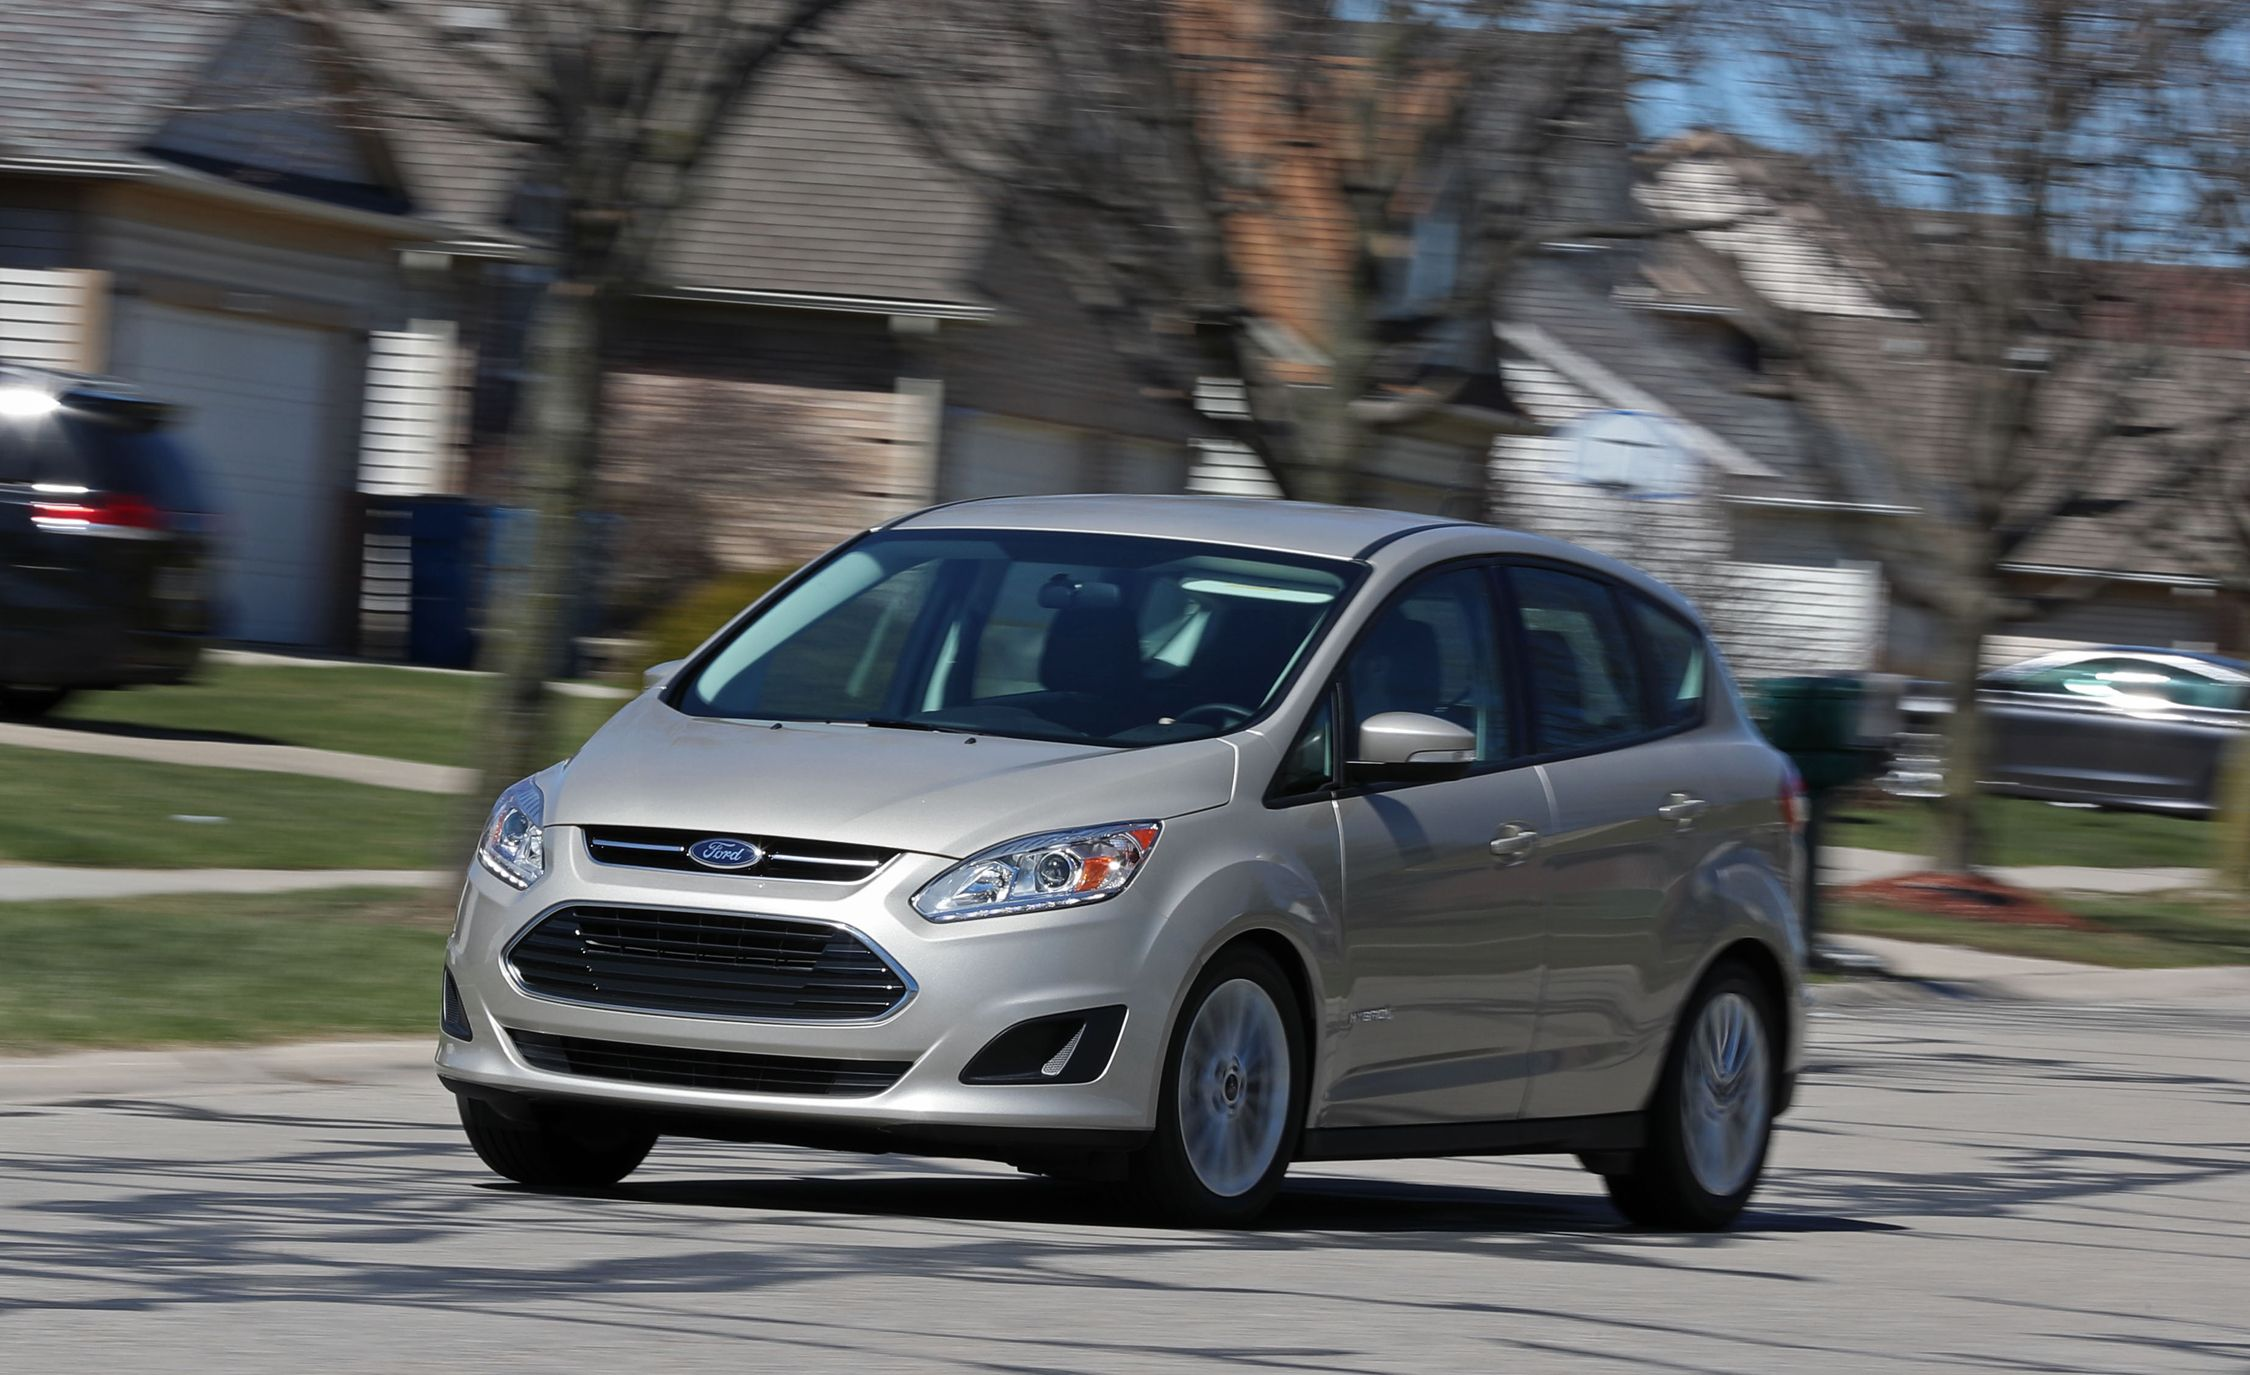 2018 Ford C Max Cargo Space and Storage Review